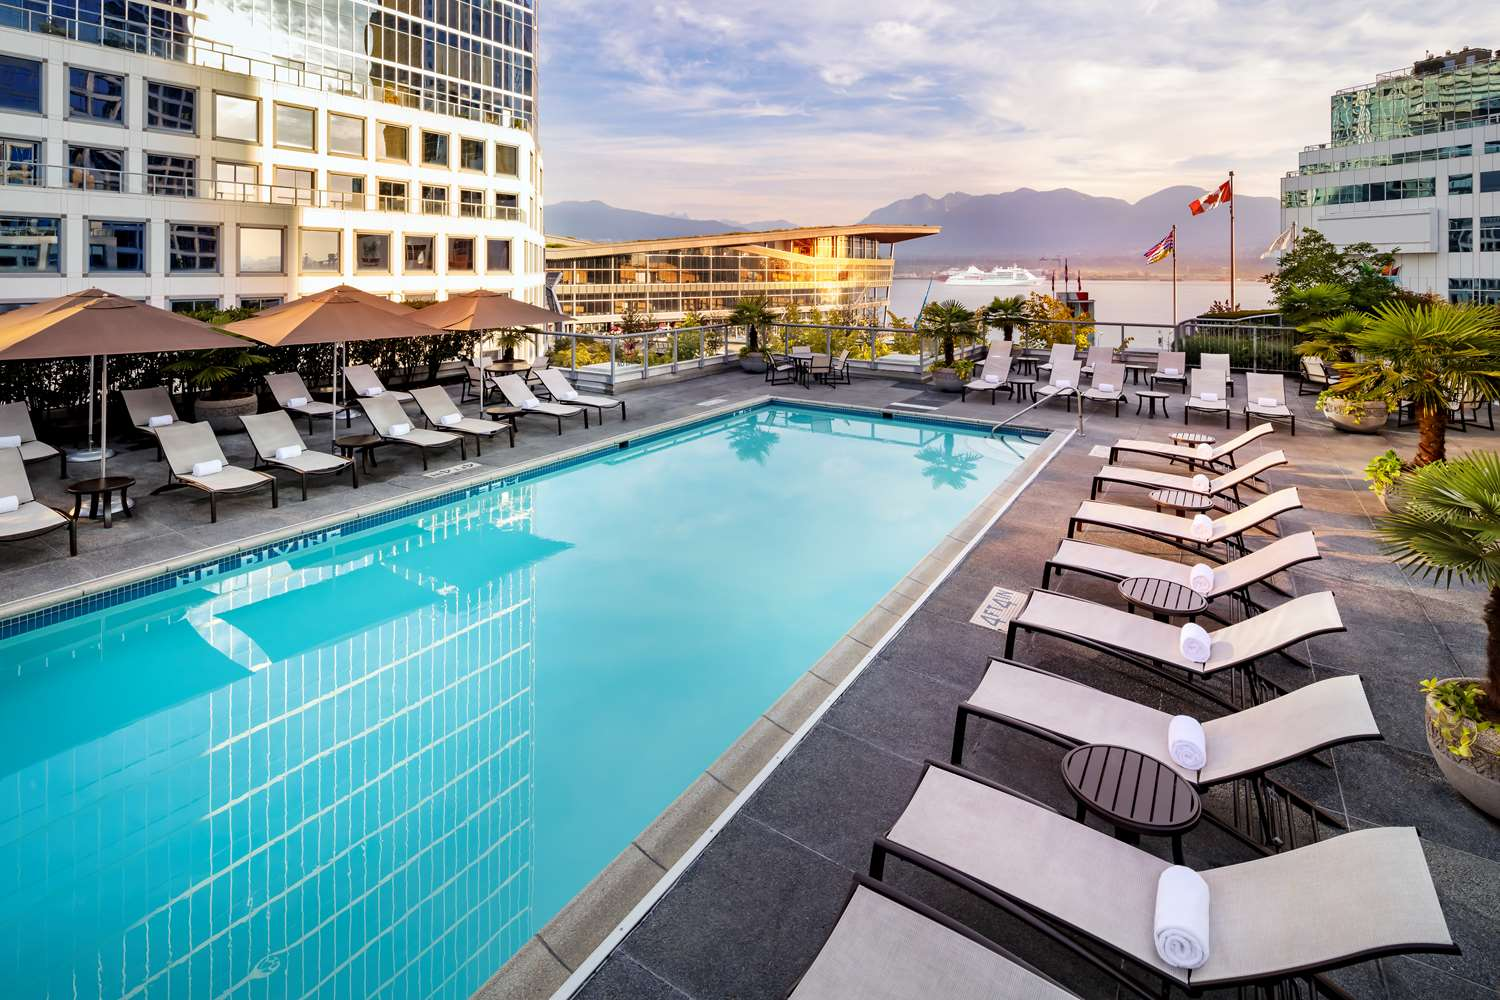 Pool - Fairmont Waterfront Hotel Vancouver